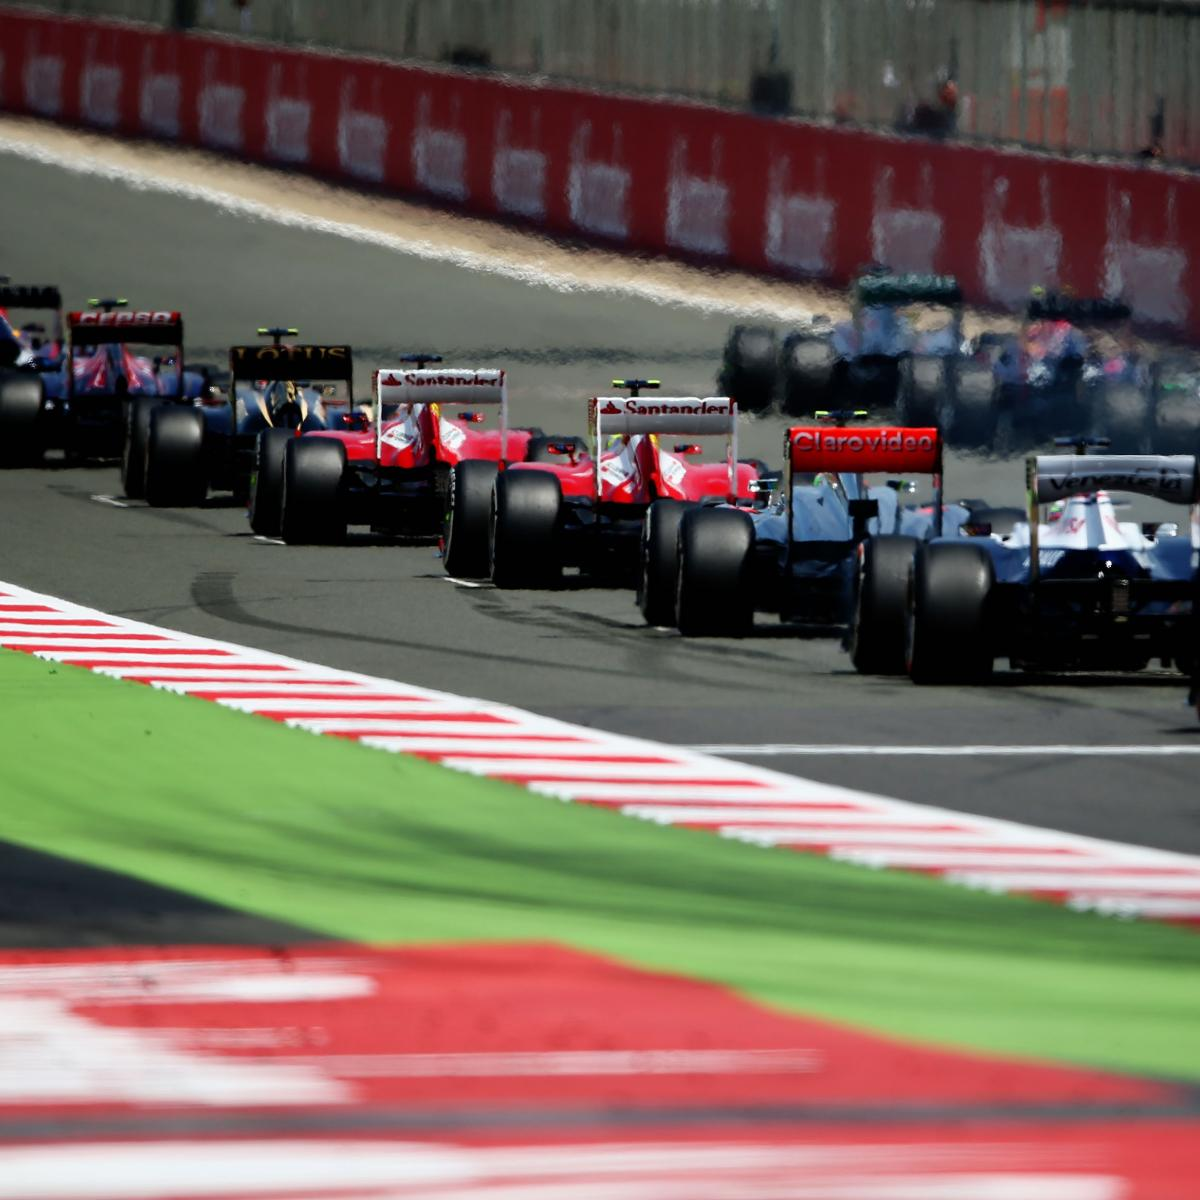 Inside F1 Cars: Does a Formula 1 Car Have a Clutch, and How Does It ...